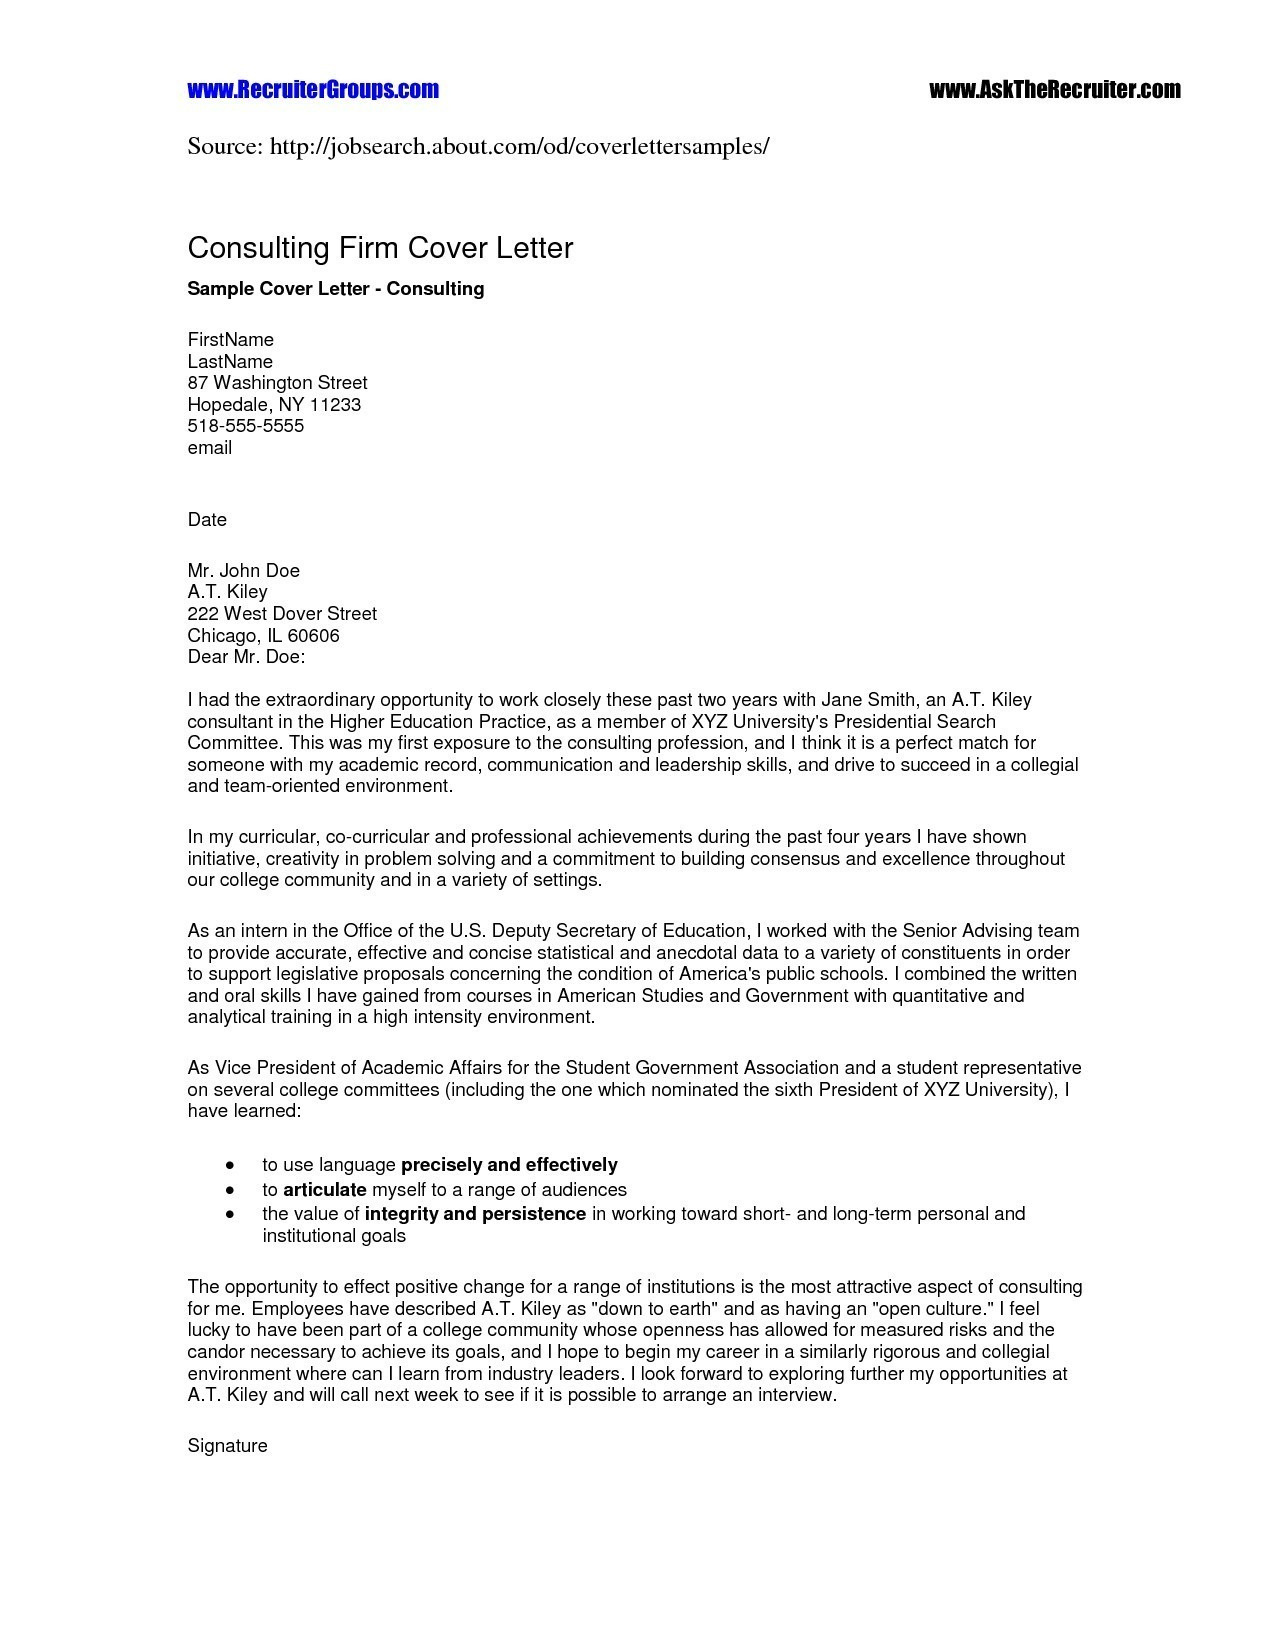 Business Christmas Letter Template - Awesome Free Christmas Letter Templates Microsoft Word